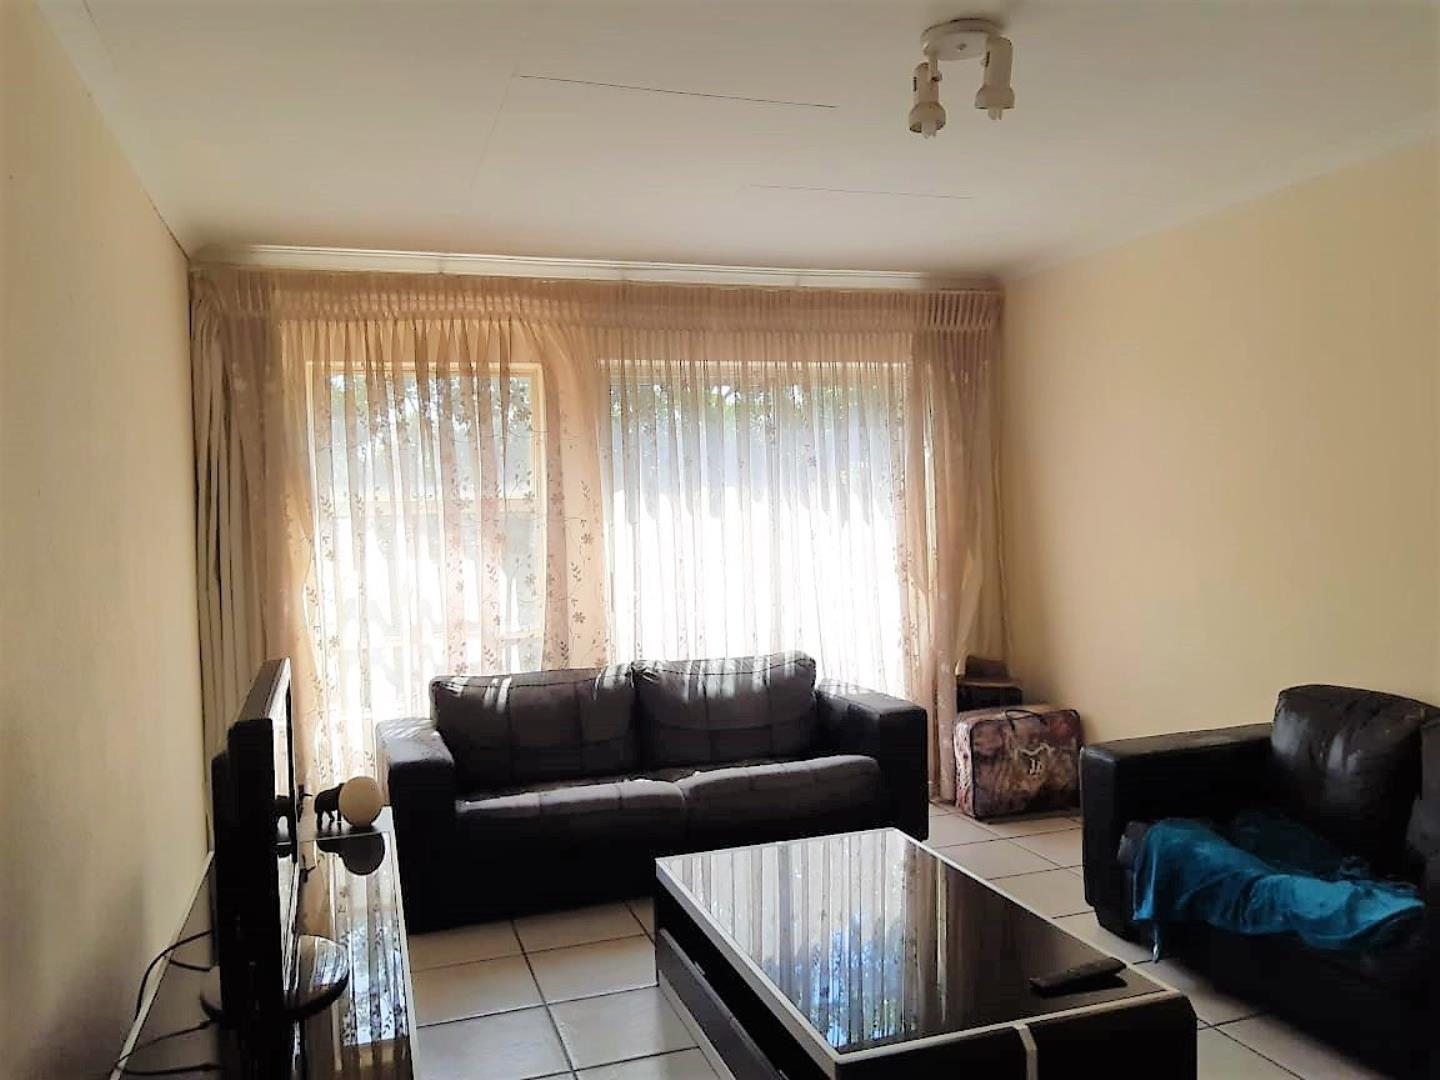 2 Bedroom Apartment for Sale in Florida, Roodepoort - Gauteng